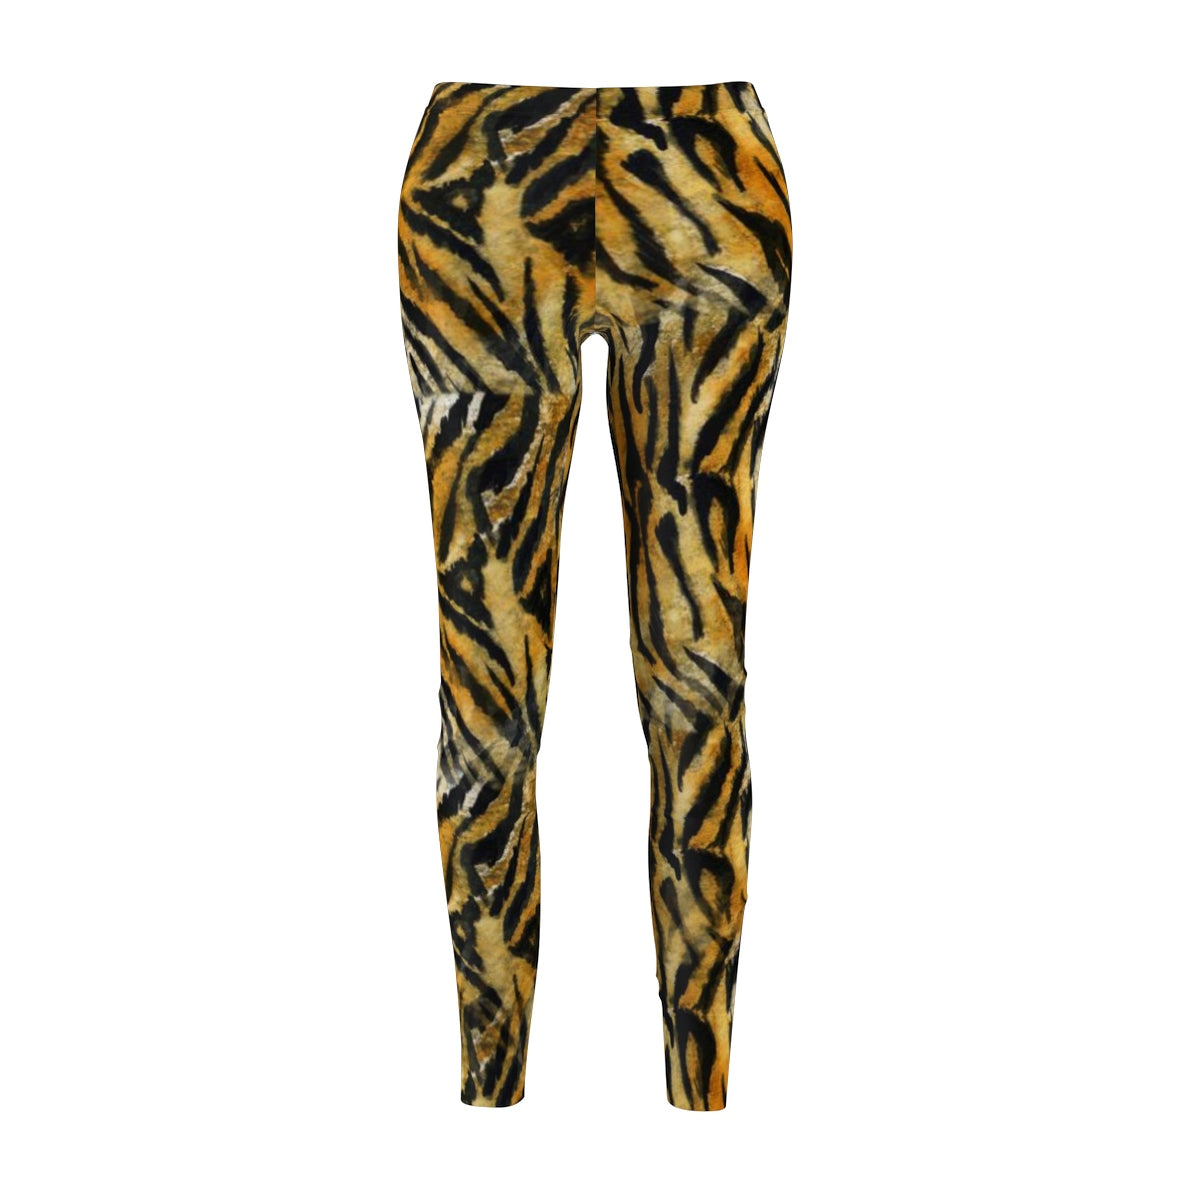 Orange Bengal Tiger Striped Animal Print Women's Casual Leggings - Made in USA-Casual Leggings-M-Heidi Kimura Art LLC